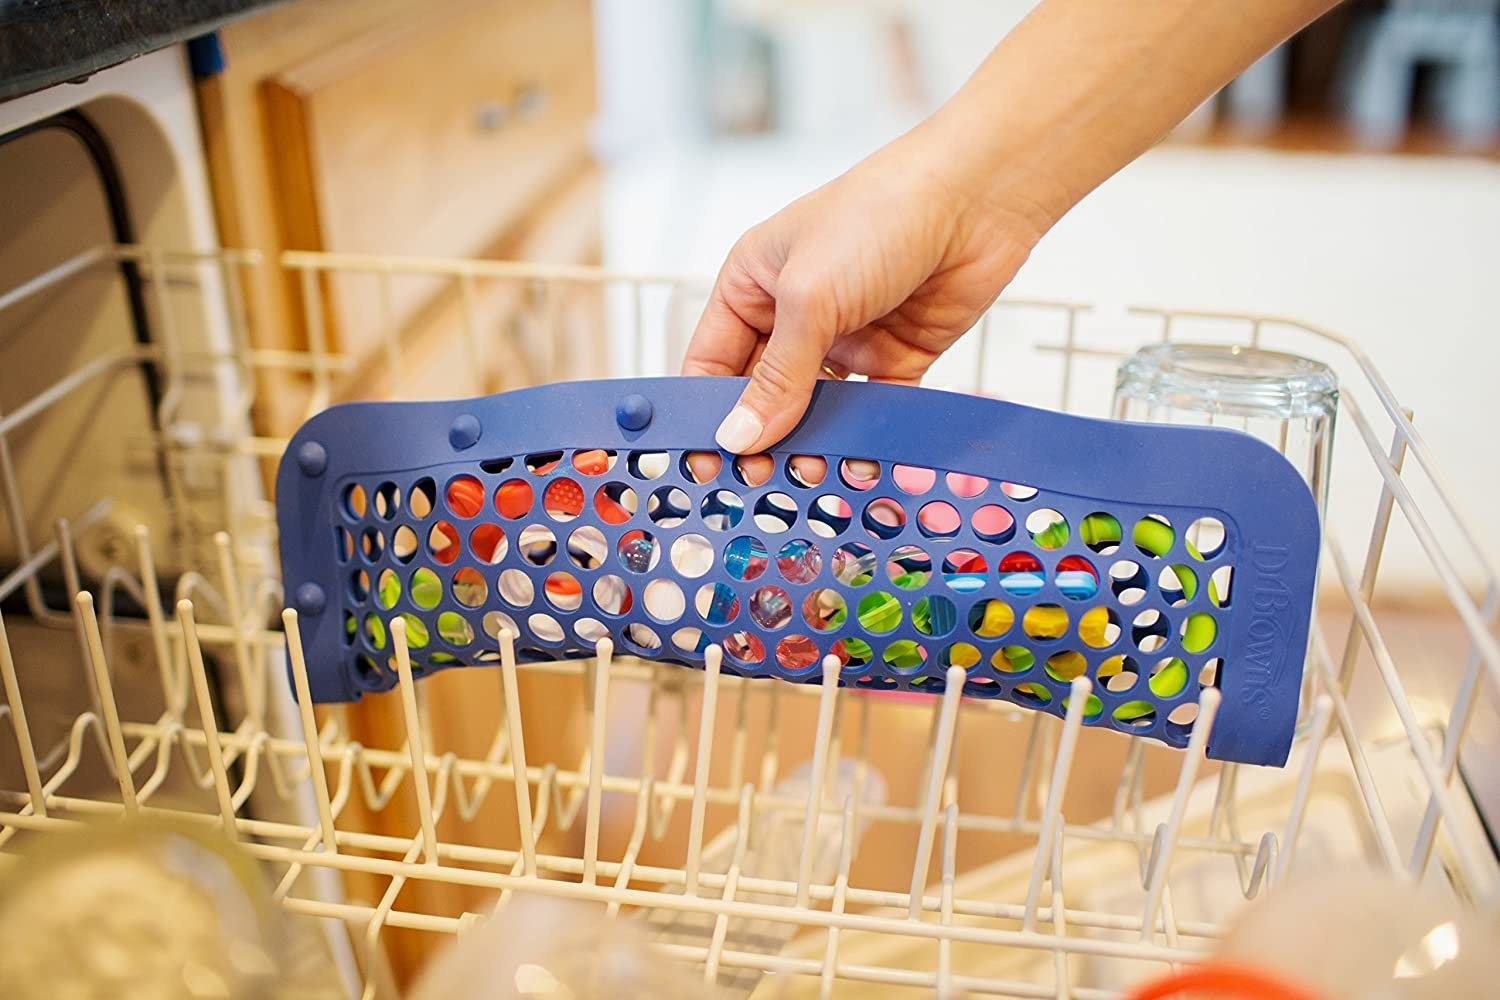 A person places the silicone bag into a dishwasher